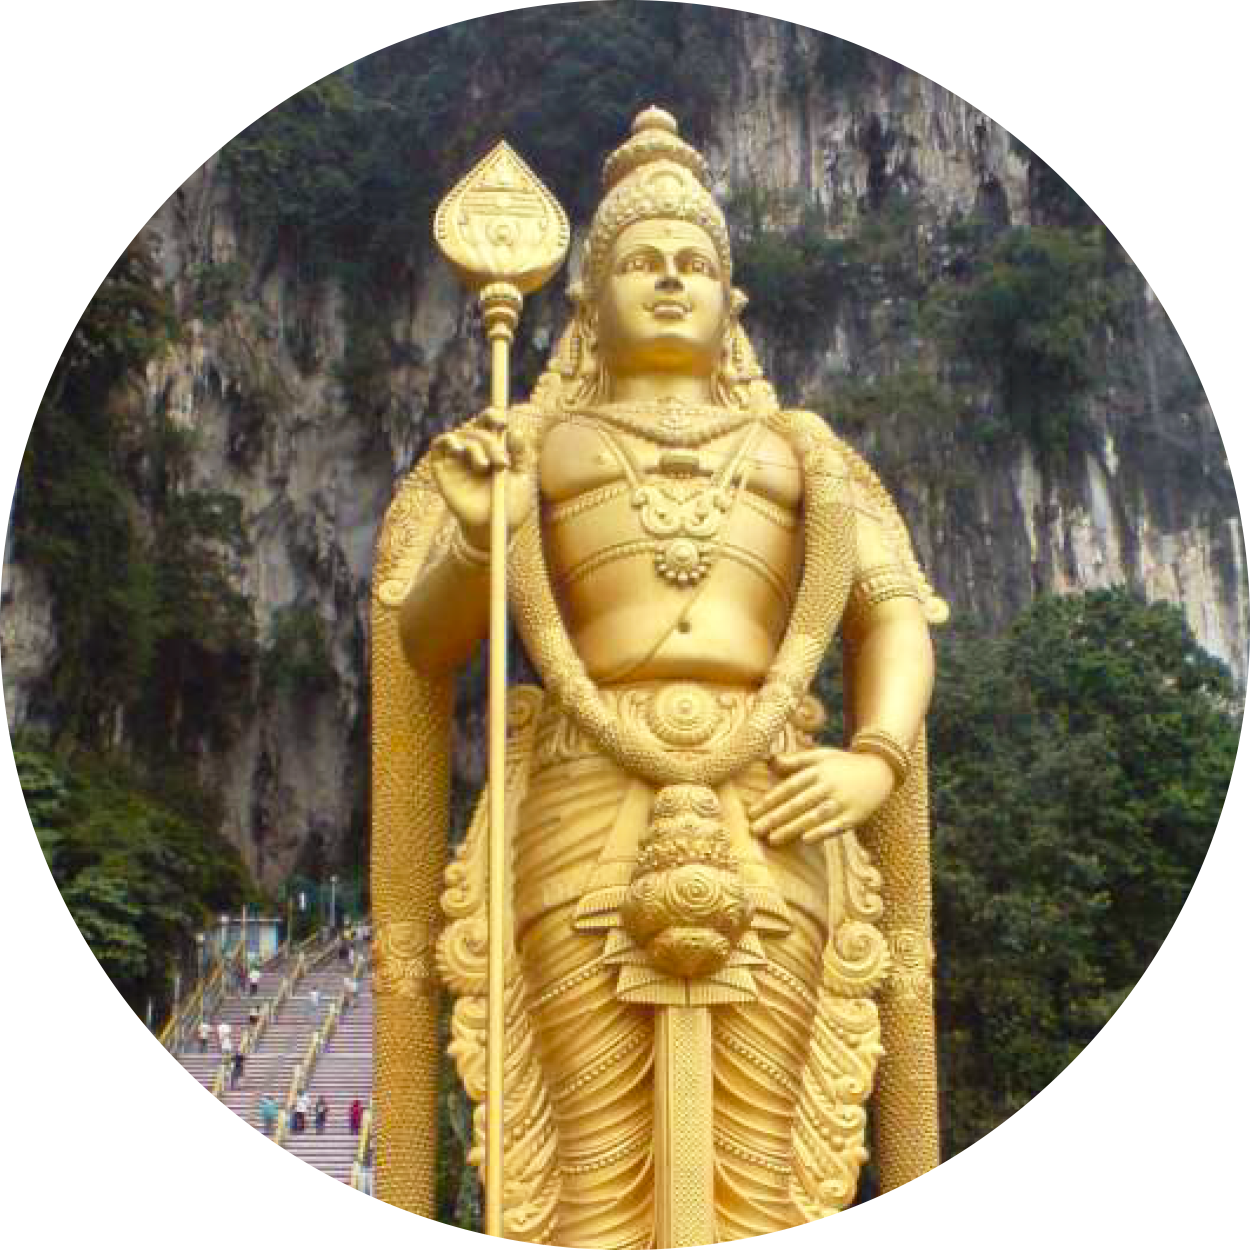 An image of the well-known Batu Caves temple from the fireflies and elephant sanctuary tour package offered by MM Adventure, conducted by our professional nature guides, representing the unique, multicultural heritage sights you can enjoy on vacation in Kuala Lumpur, Malaysia.